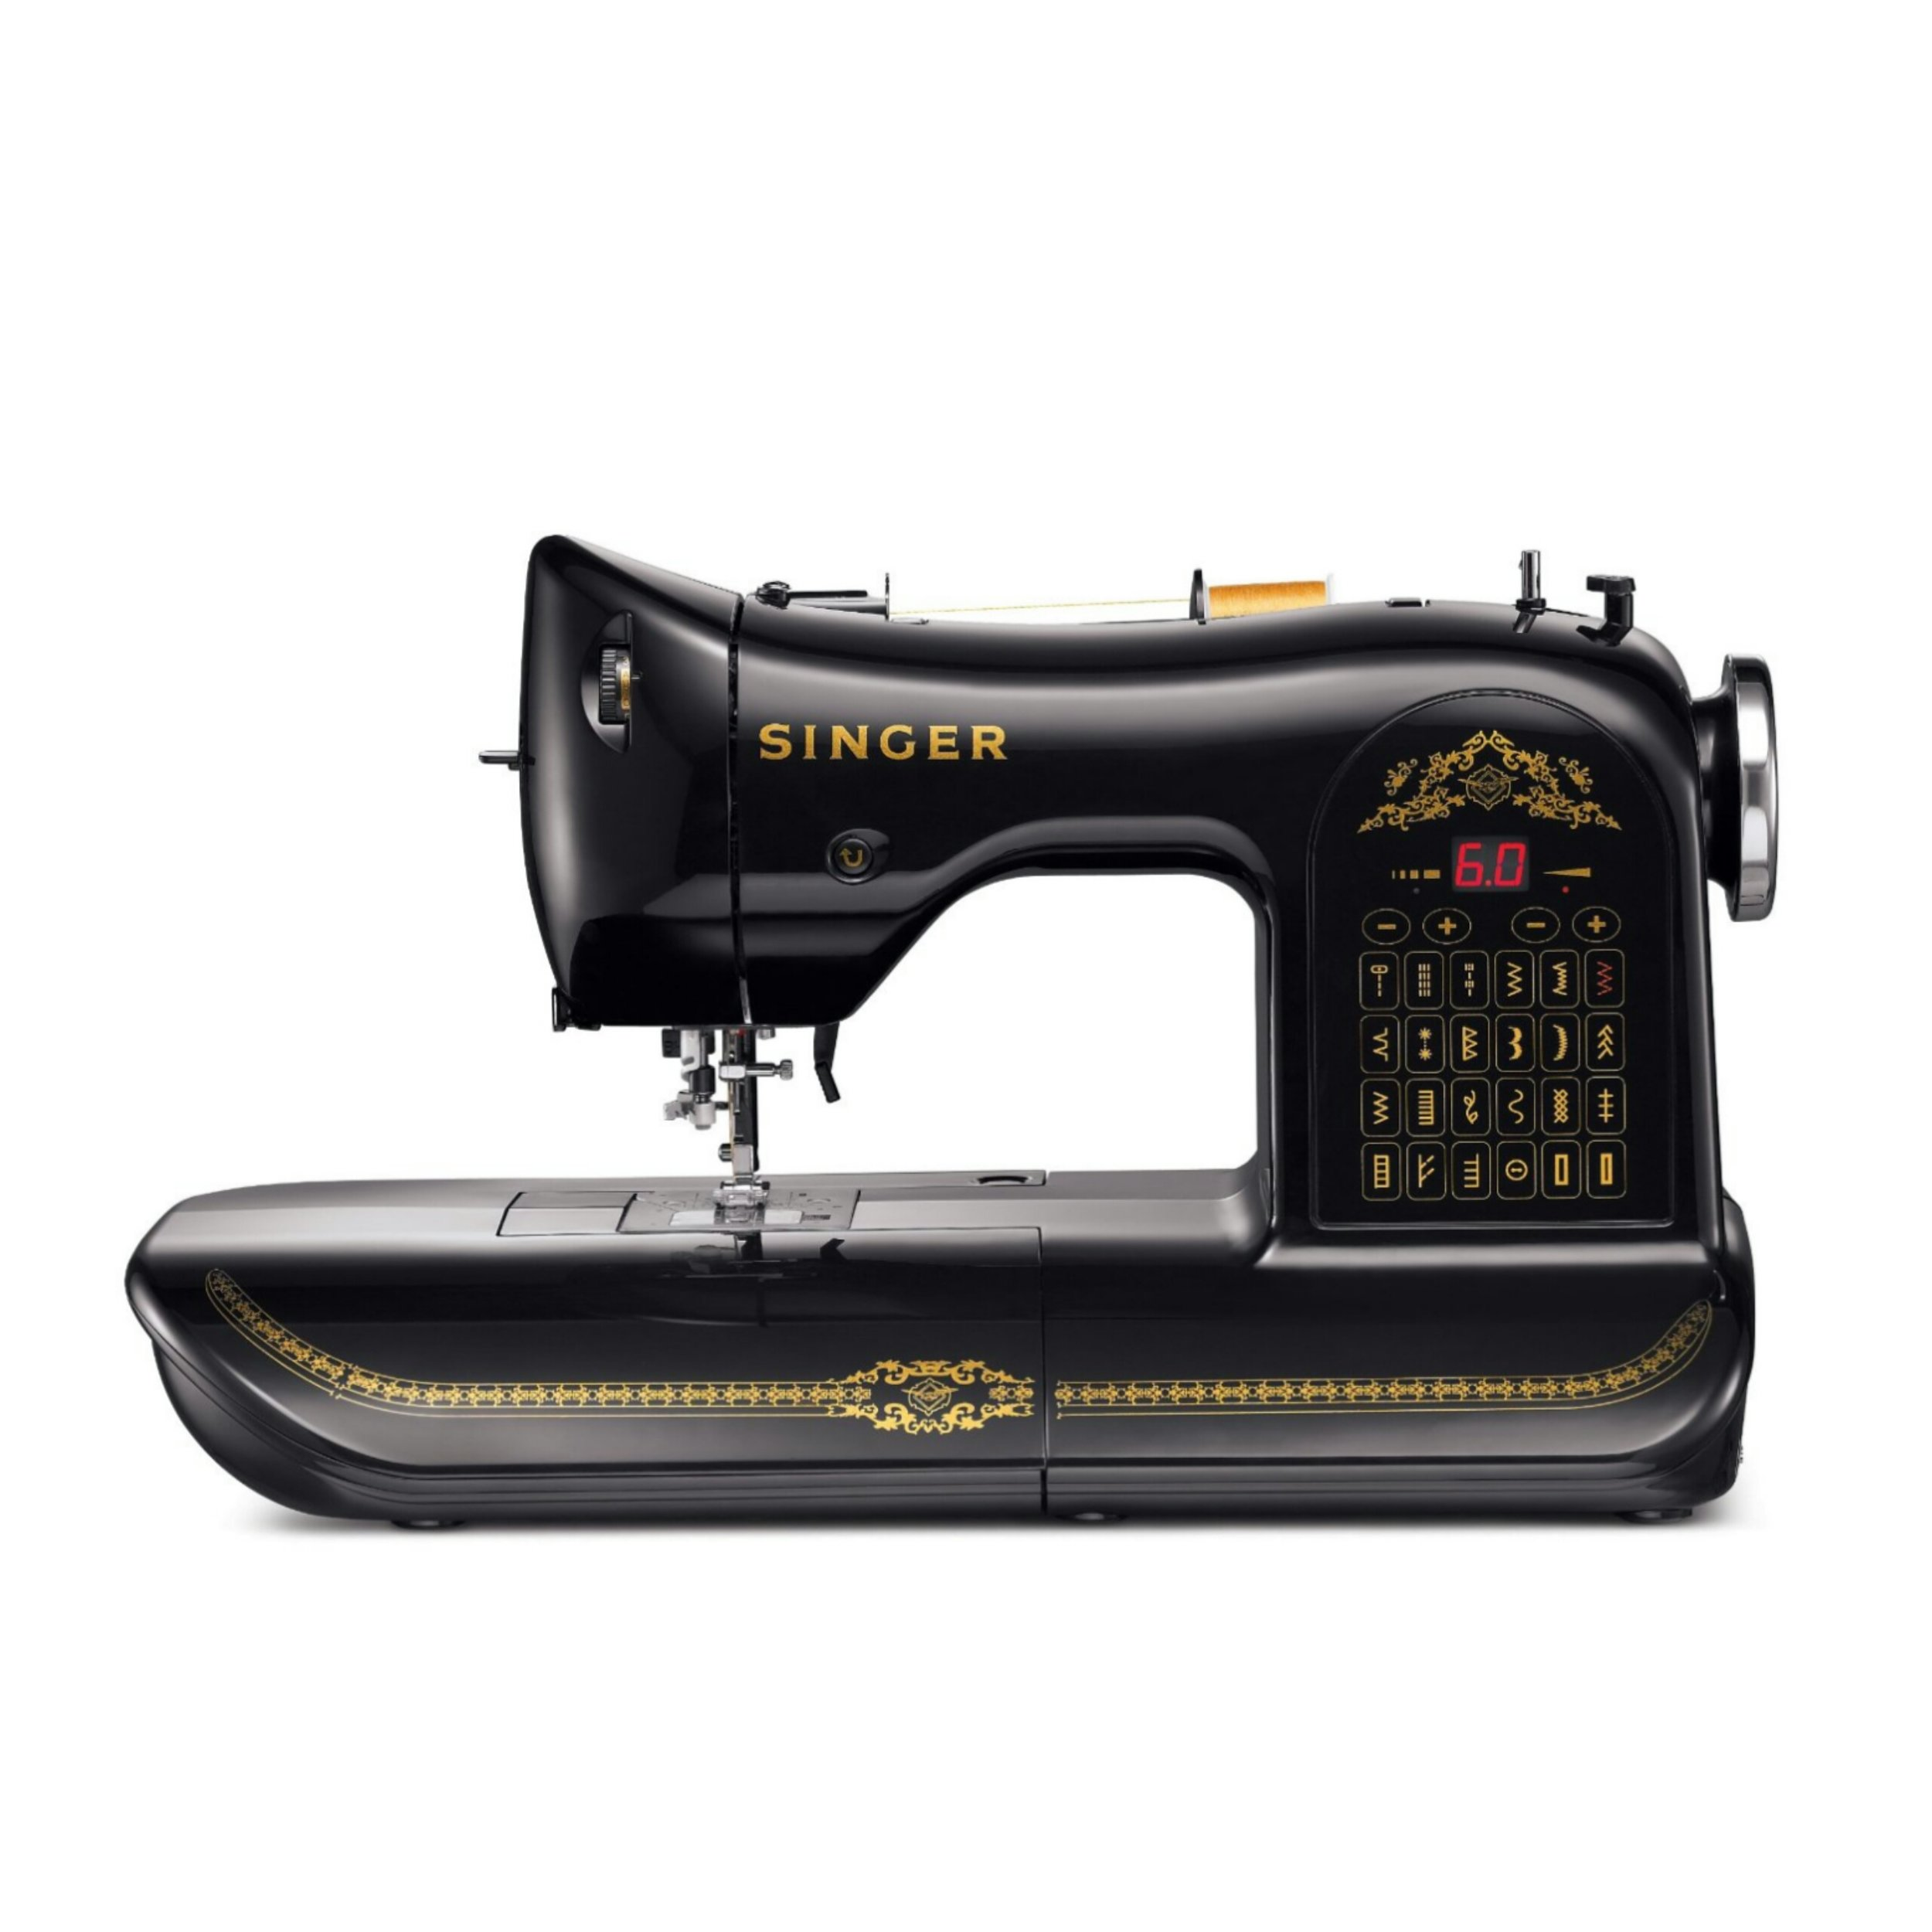 SINGER-160-Anniversary-Limited-Edition-Computerized-Sewing-Machine.jpg